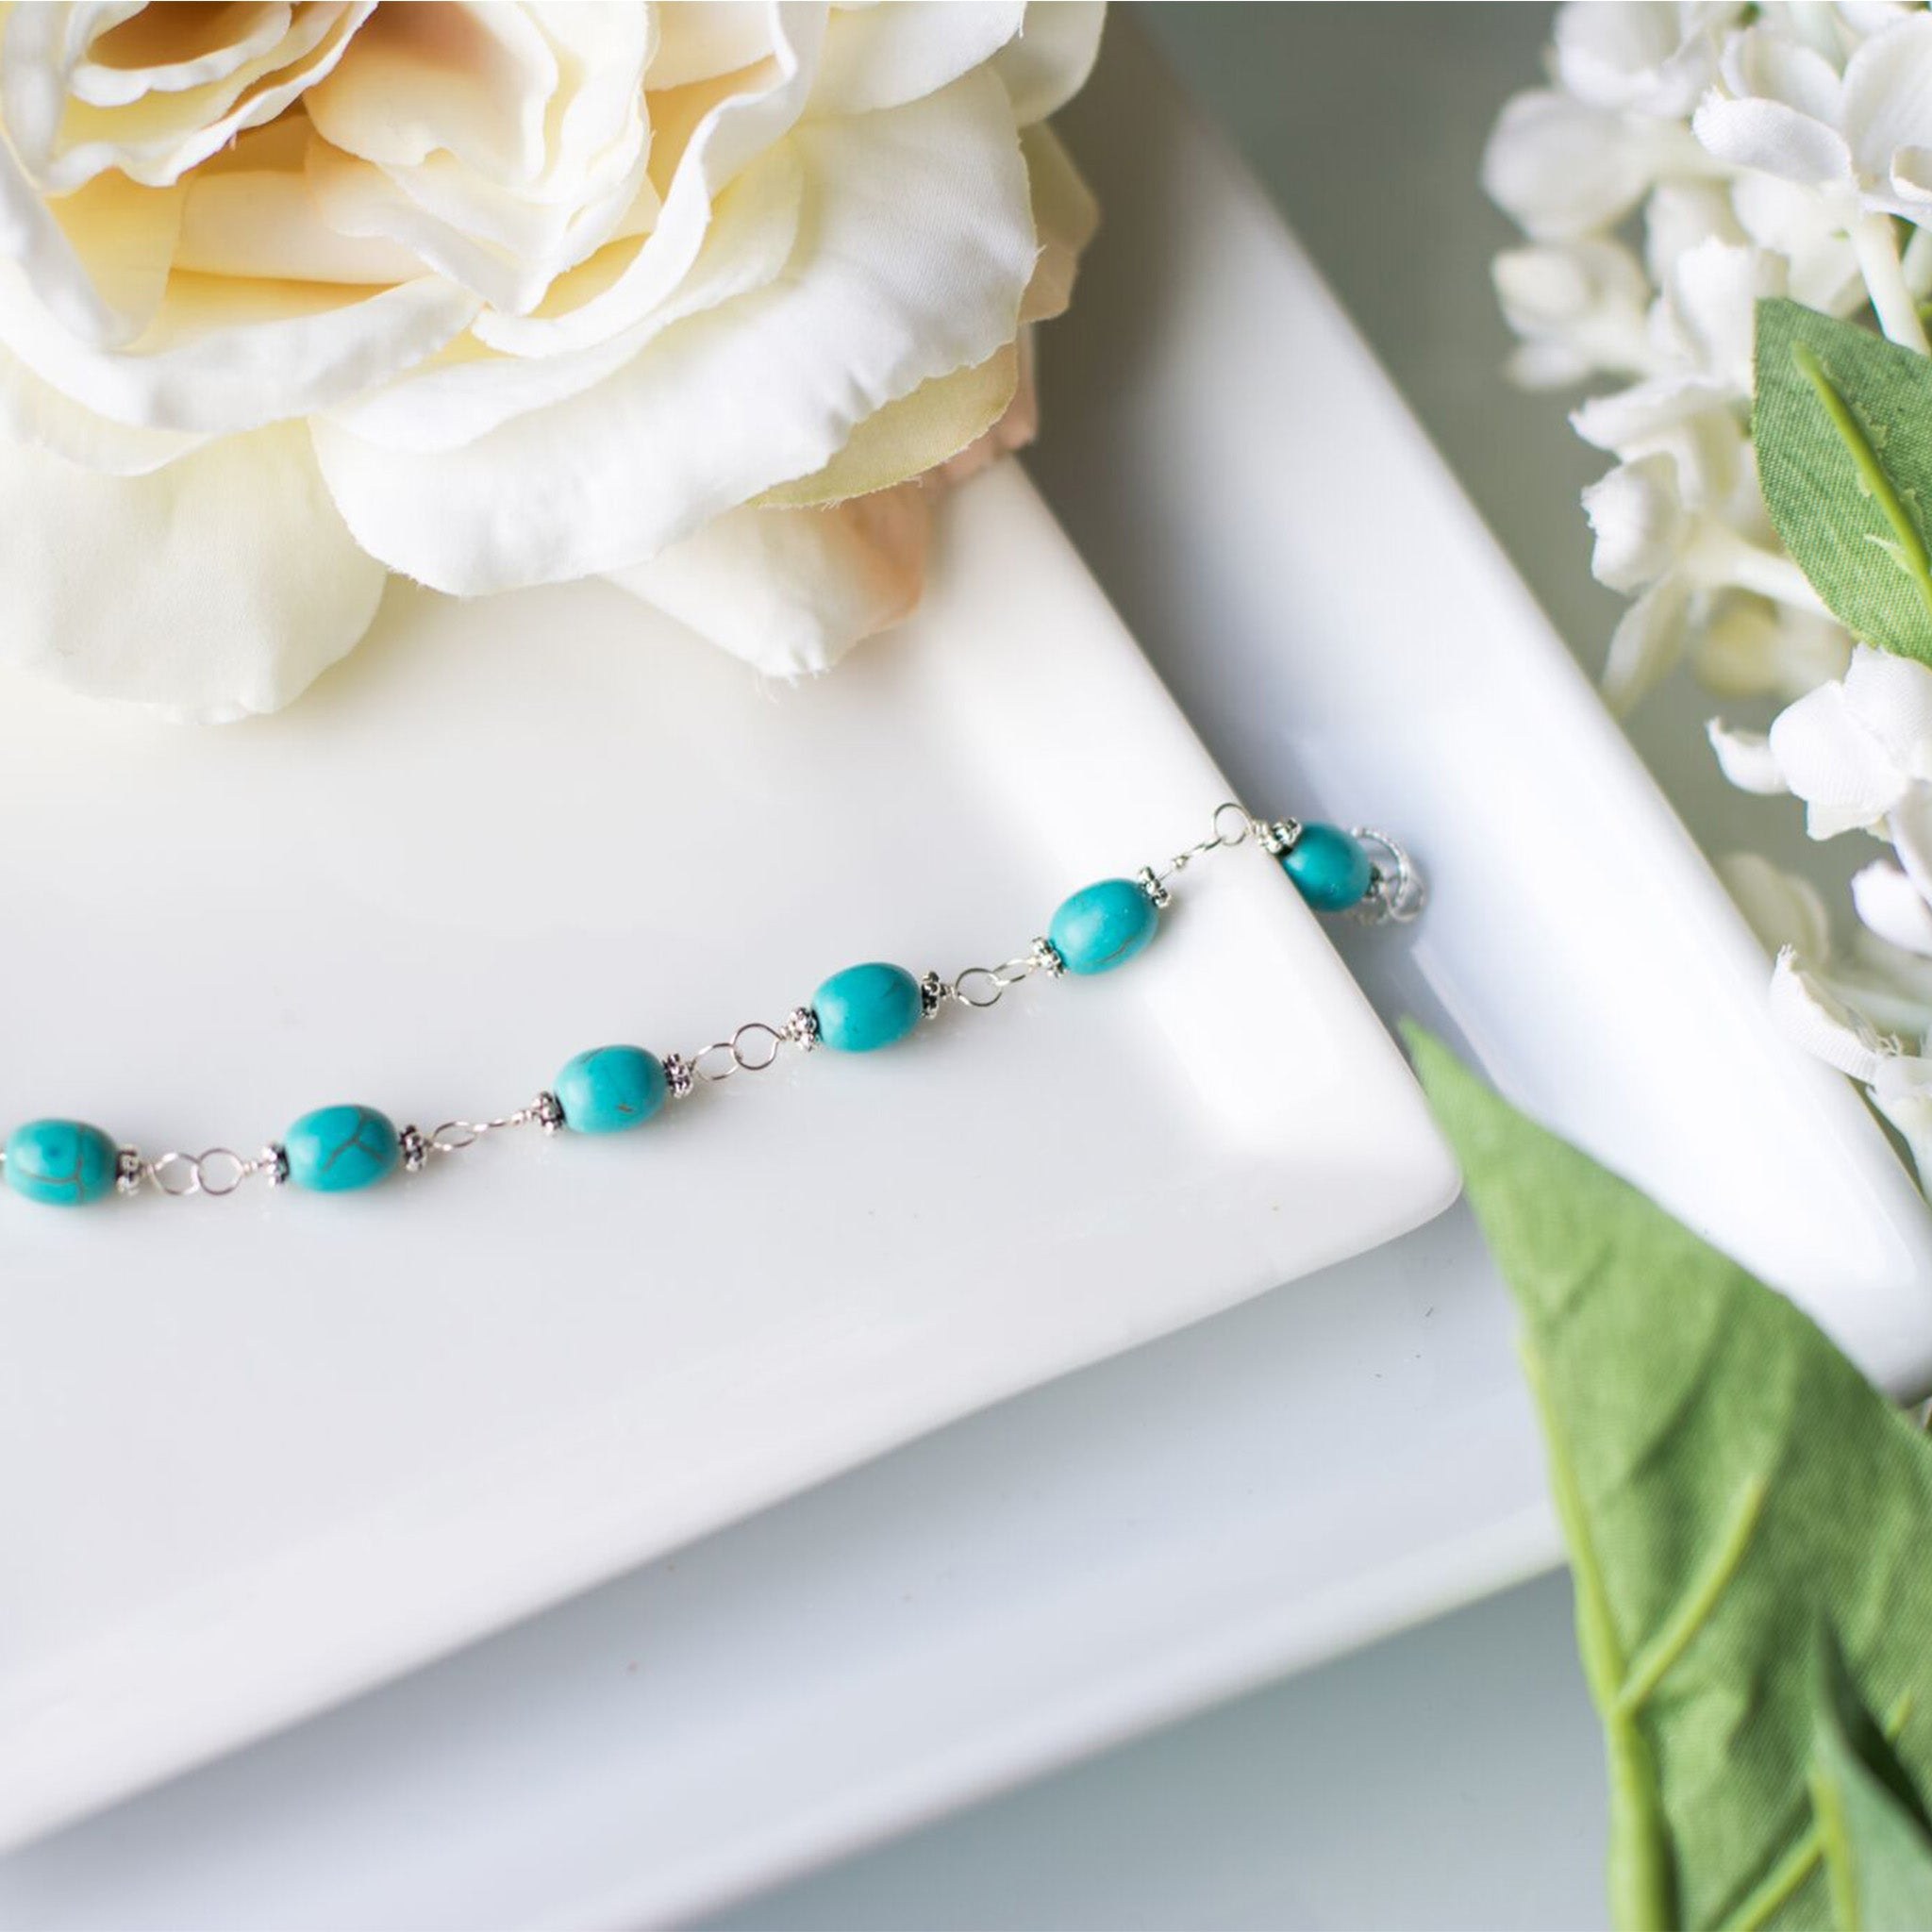 Christmas Gifts for Her - Handmade Turquoise Bracelet - Swanky Collection